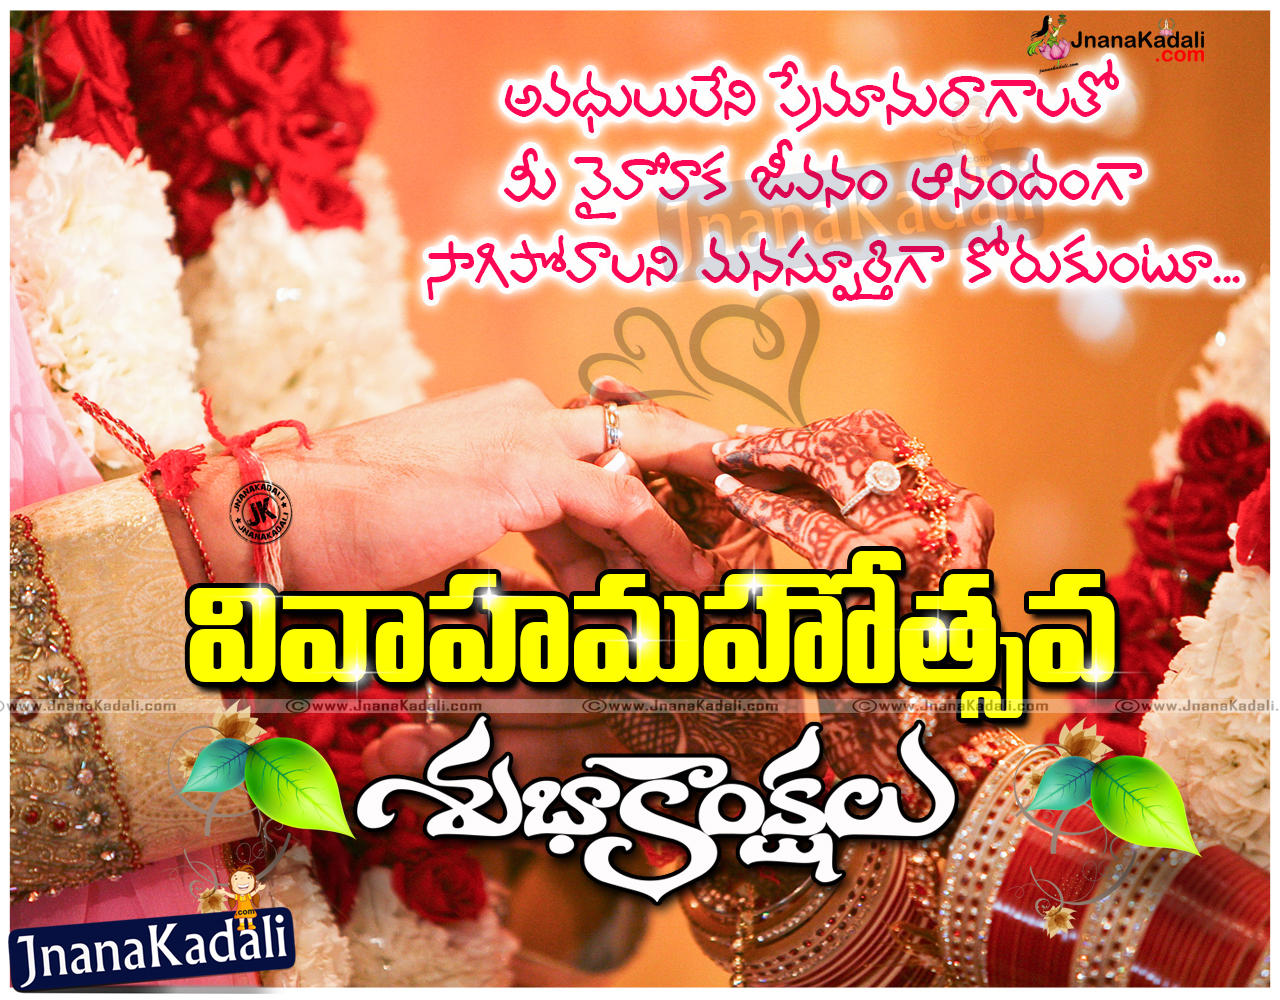 Happy Marriage Anniversary Quotes Hindi: Best Telugu Marriage Anniversary Greetings And Wishes